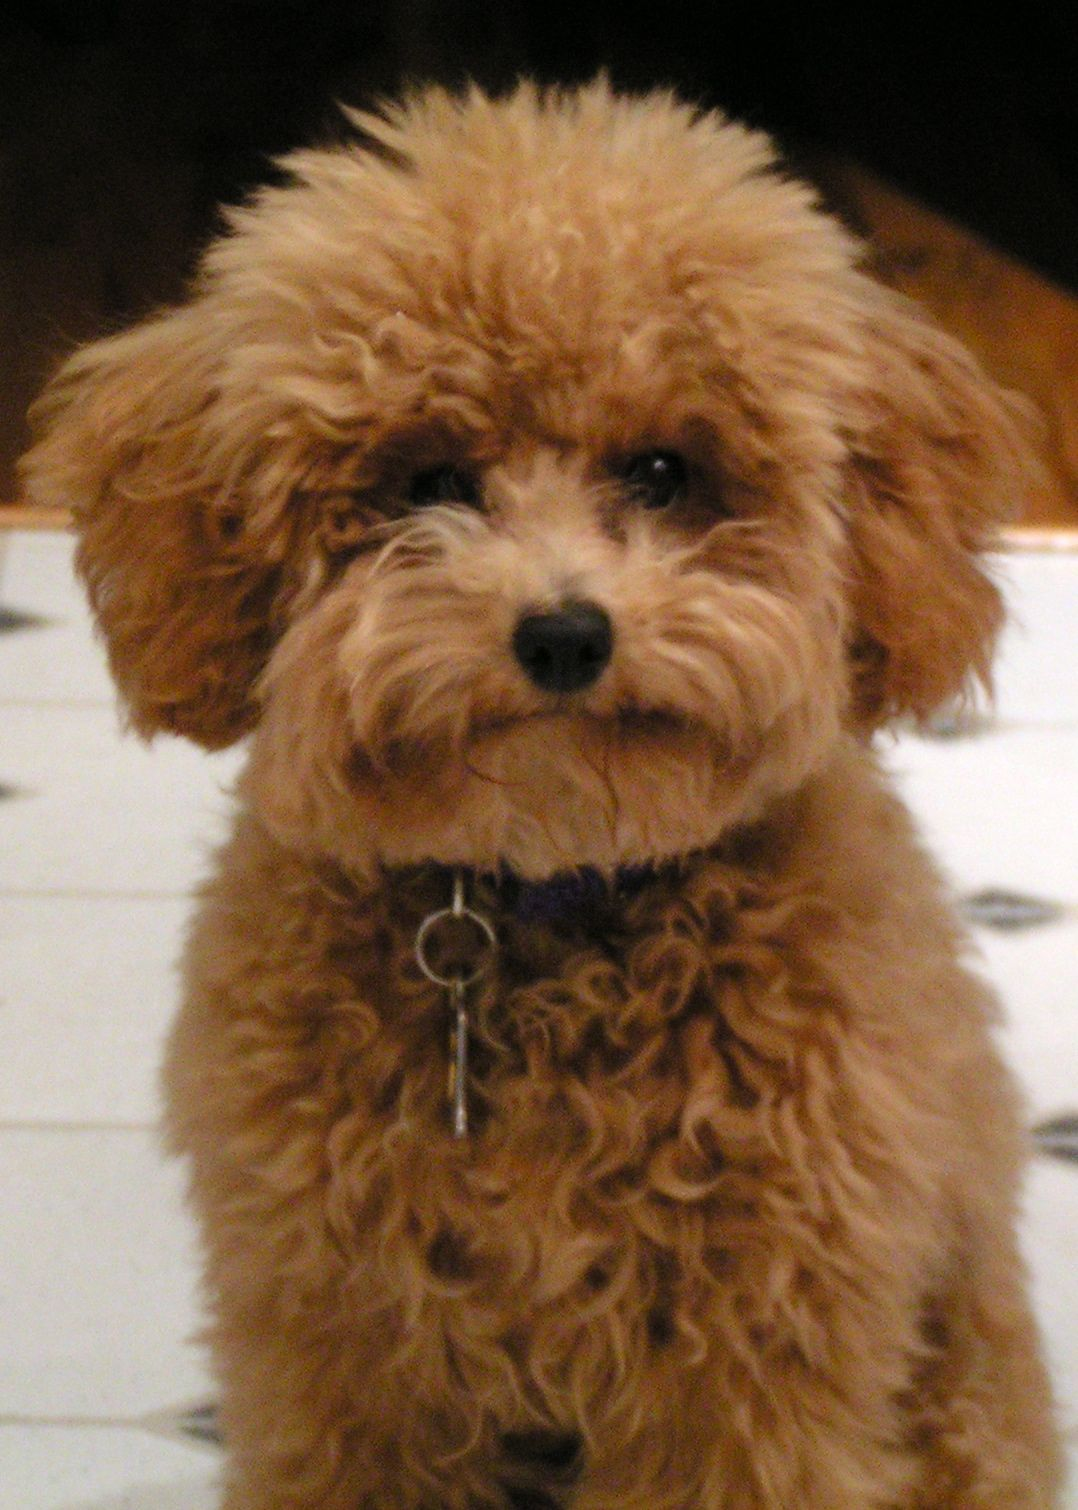 Lulu Is Part Of Our Family Apricot Toy Poodle W A Puppy Cut Love This Haircut Love This